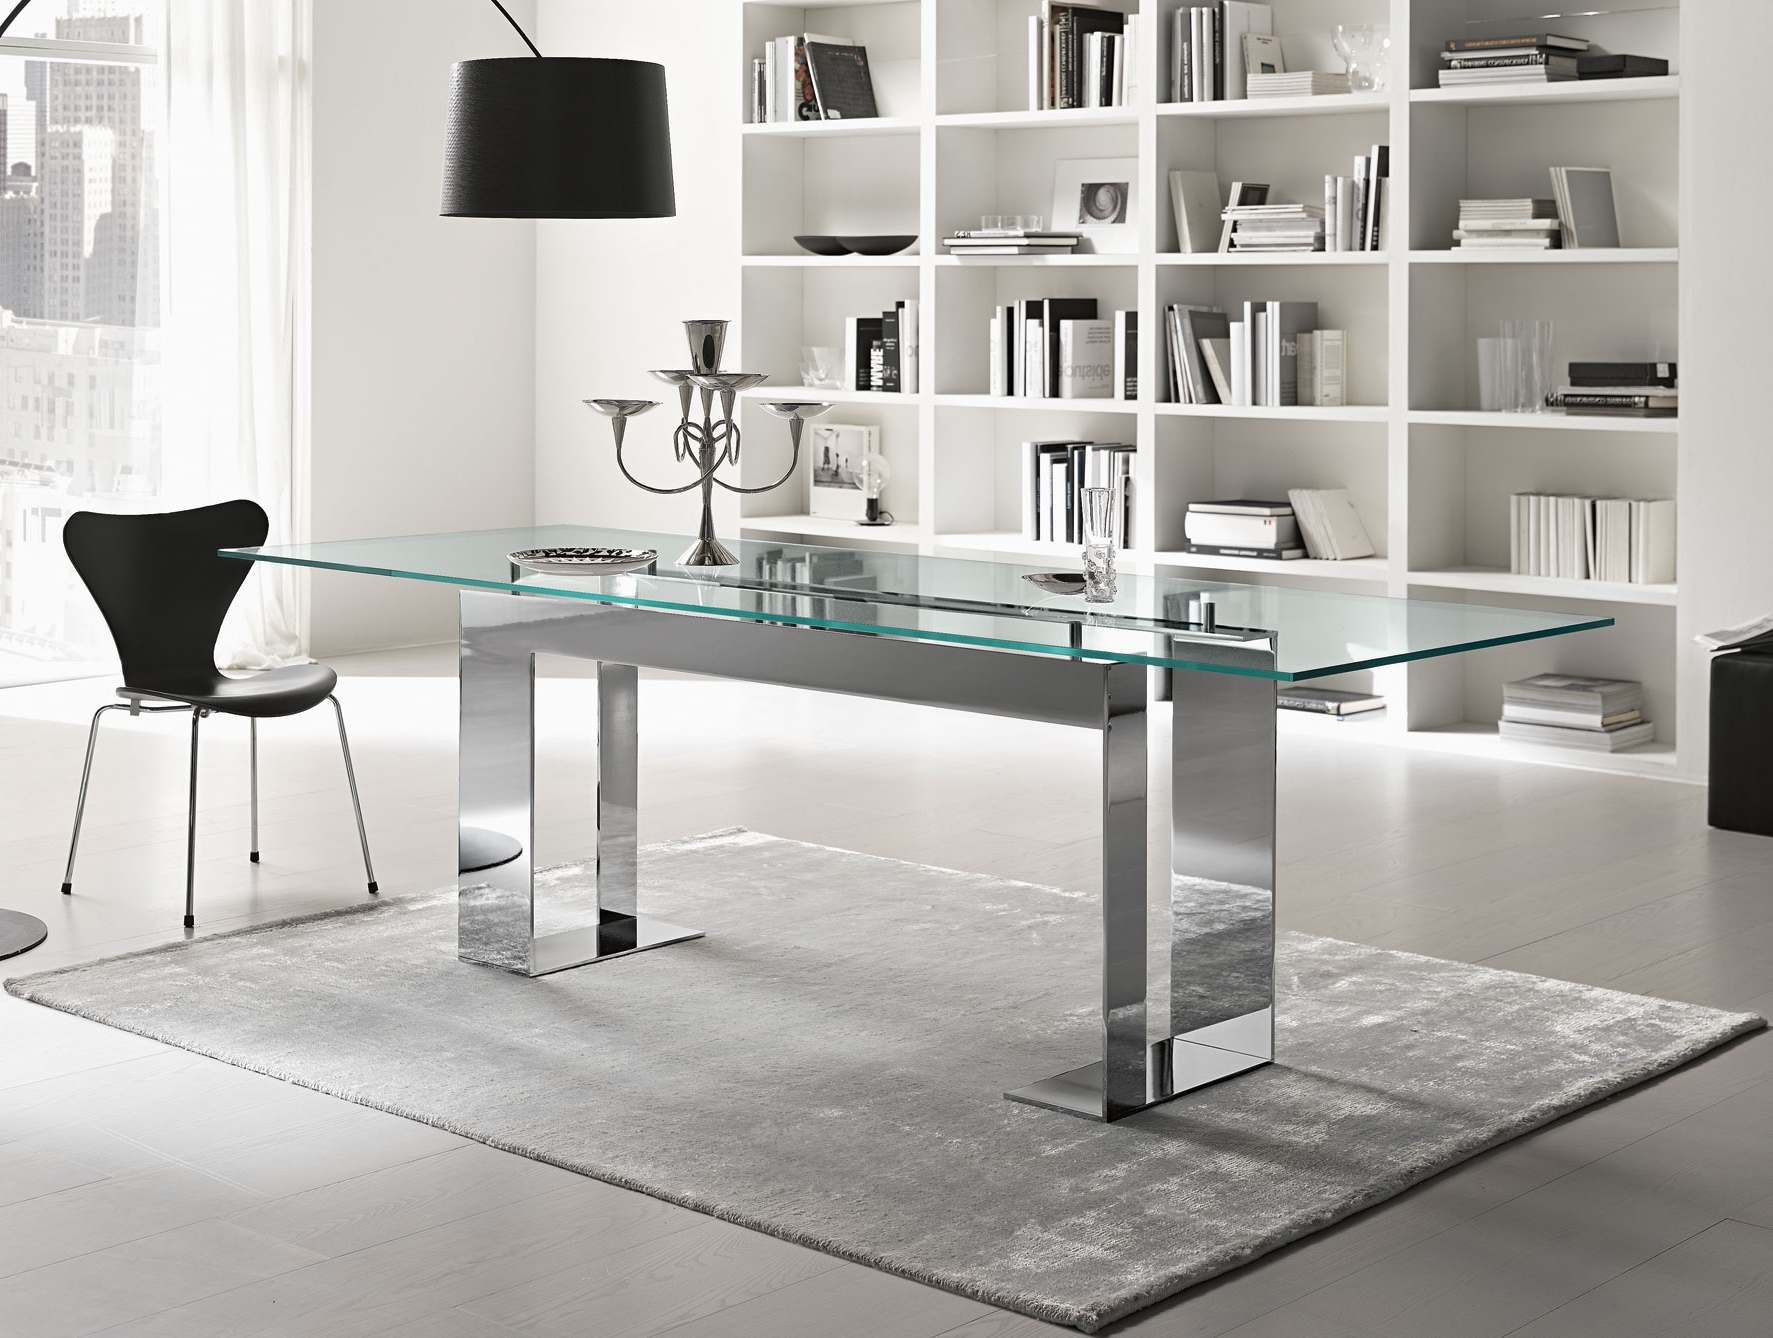 Glass Dining Tables With Regard To Most Recently Released Nella Vetrina Tonelli Miles Contemporary Italian Glass Dining Table (Gallery 18 of 25)